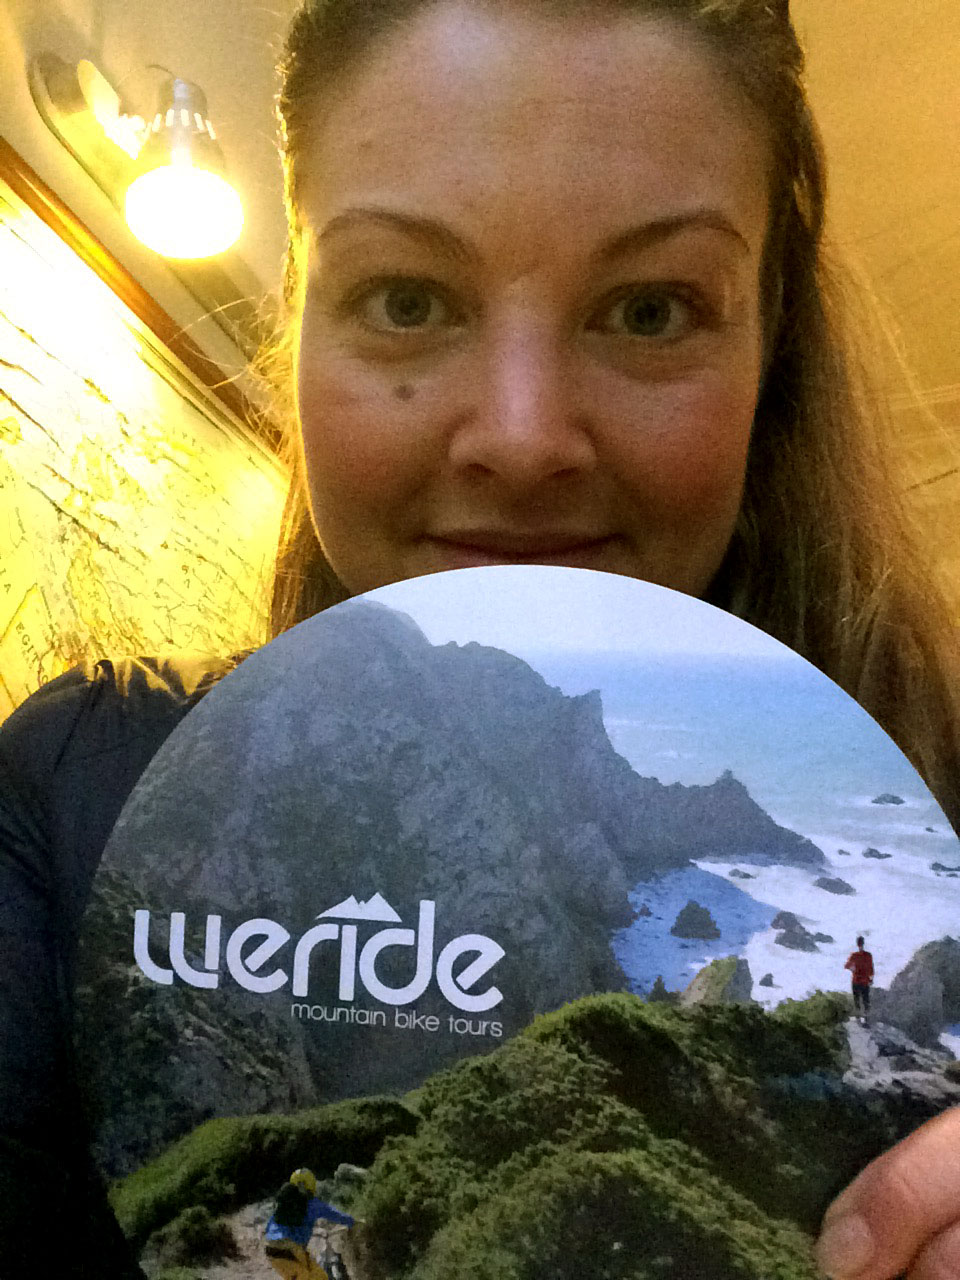 Linda in love with the WERIDE flyer!